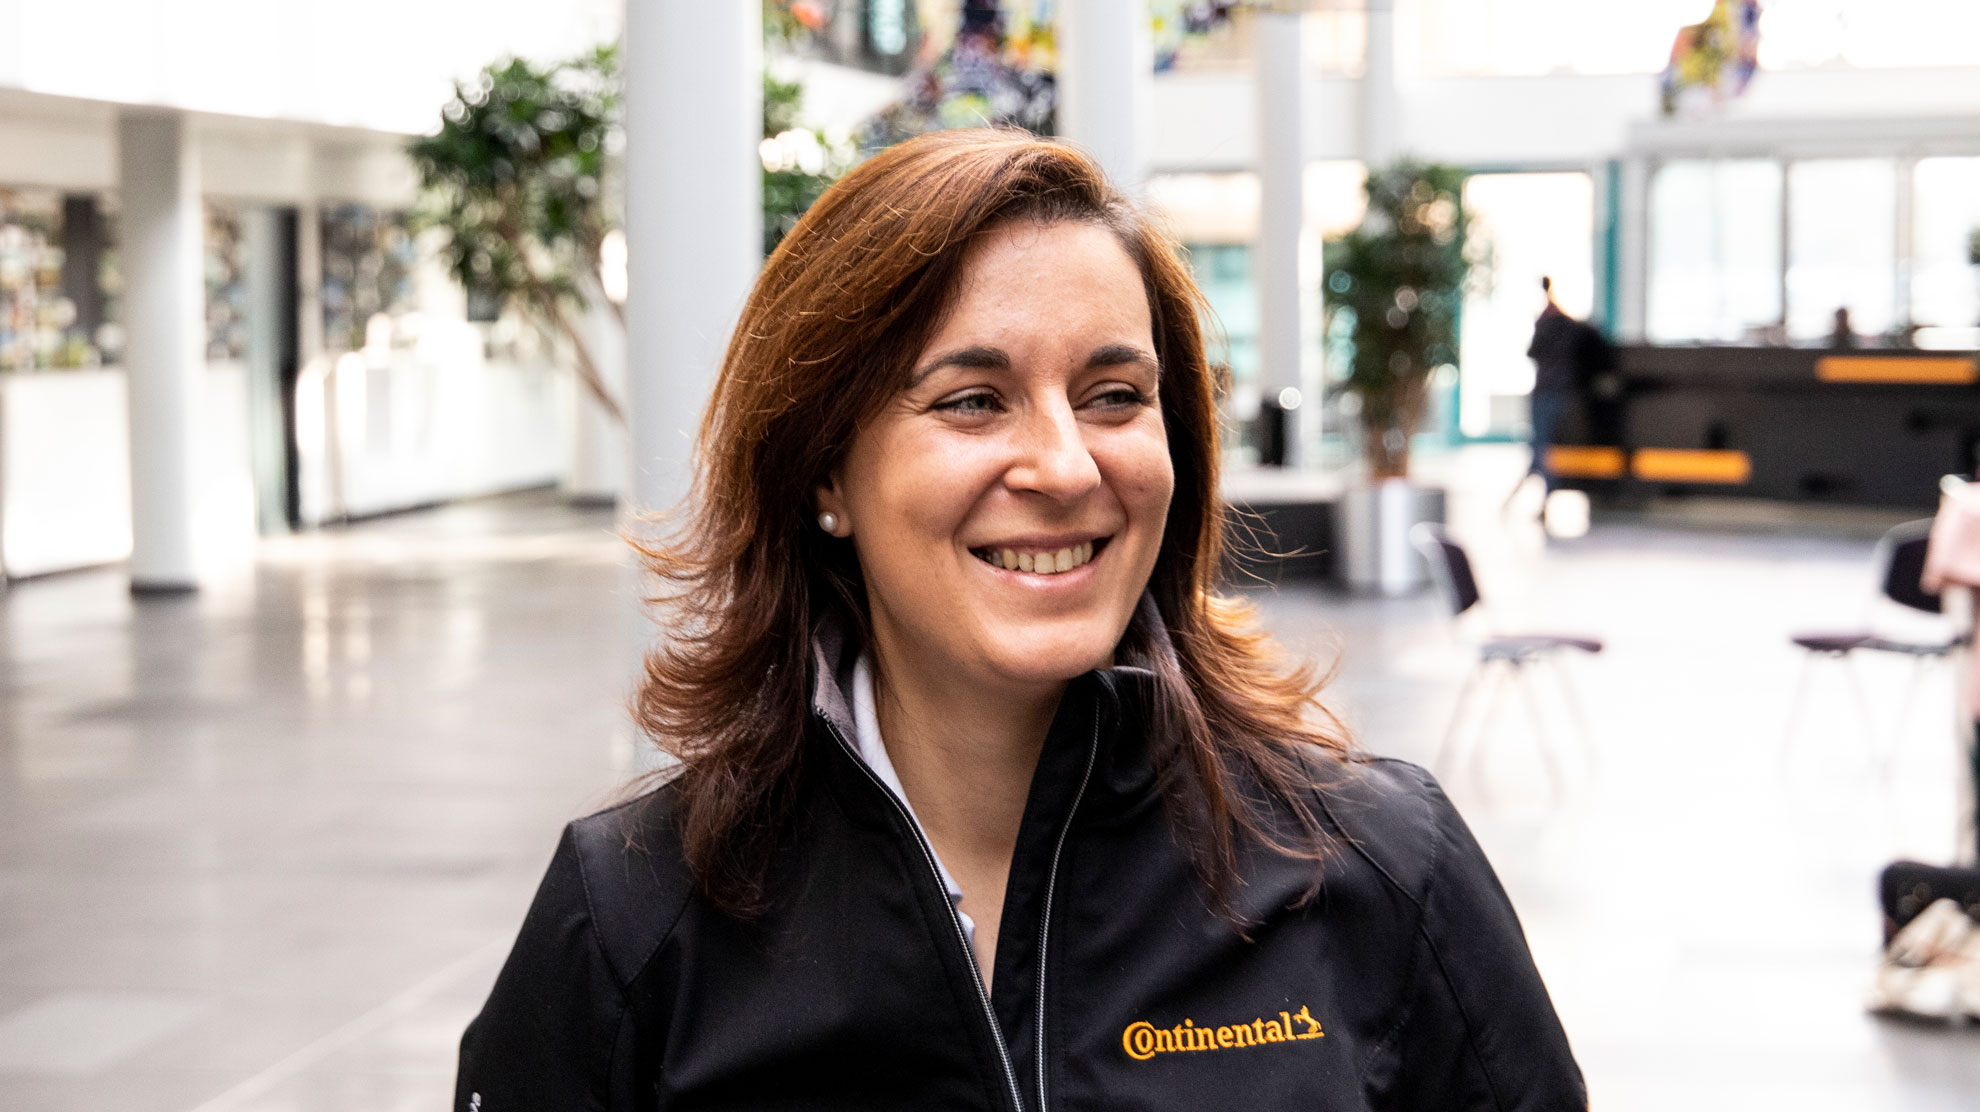 Catarina Silva – the tyre creator: 'Sustainability is not just a buzzword'